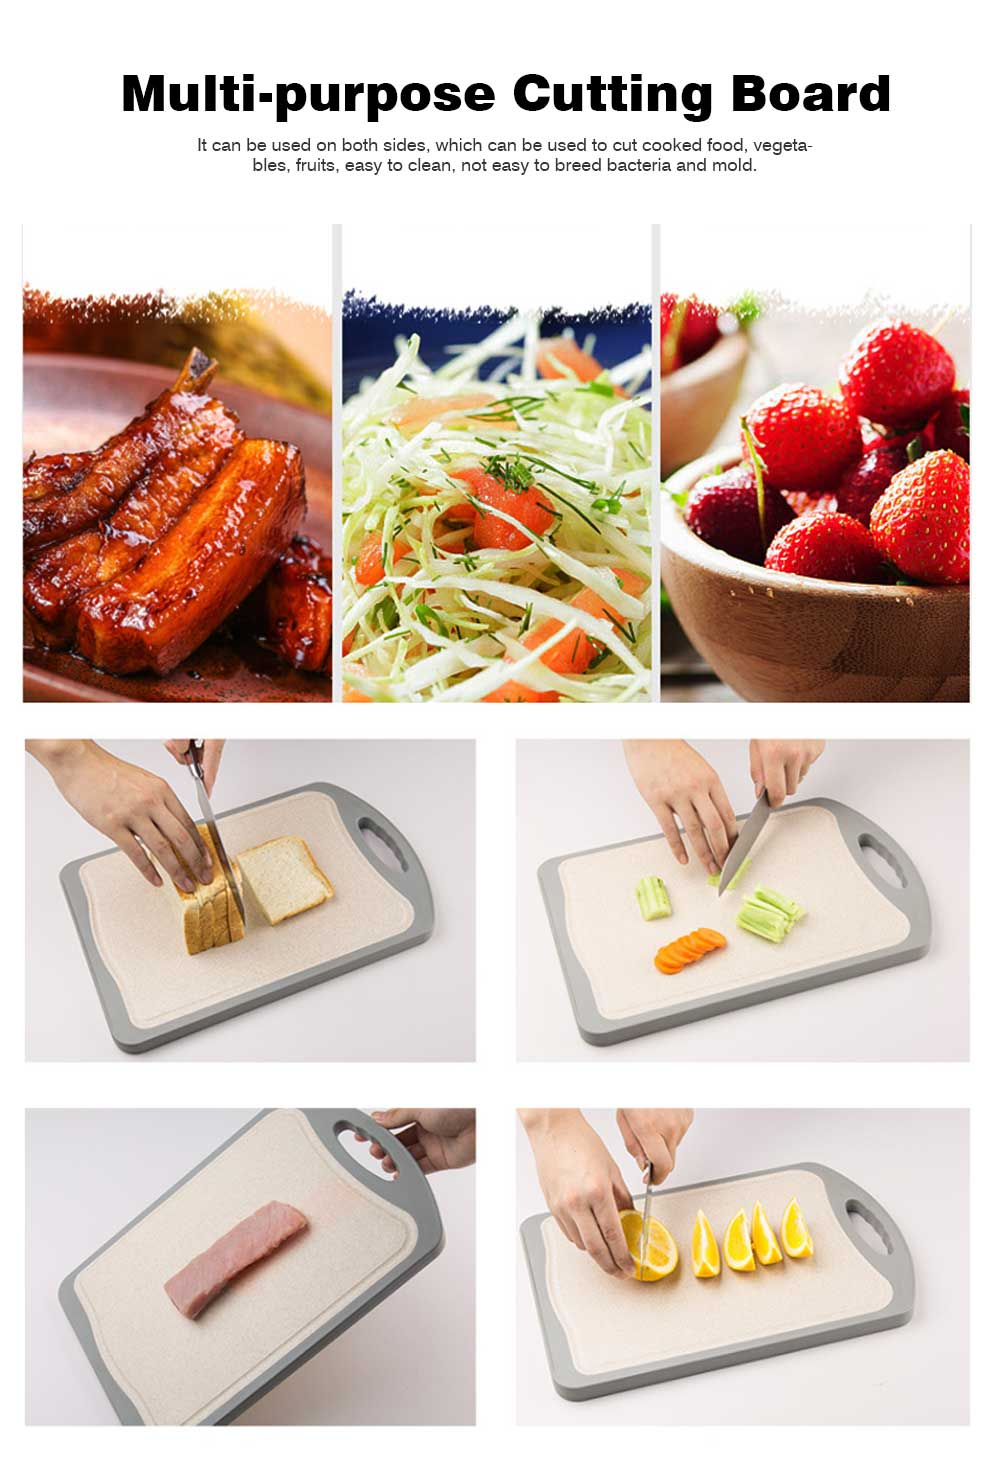 Whole Bamboo Fiber Composite Cutting Board, Healthy Non-slip Cutting Board for Cutting Cooked Food, Vegetables, Fruits 6